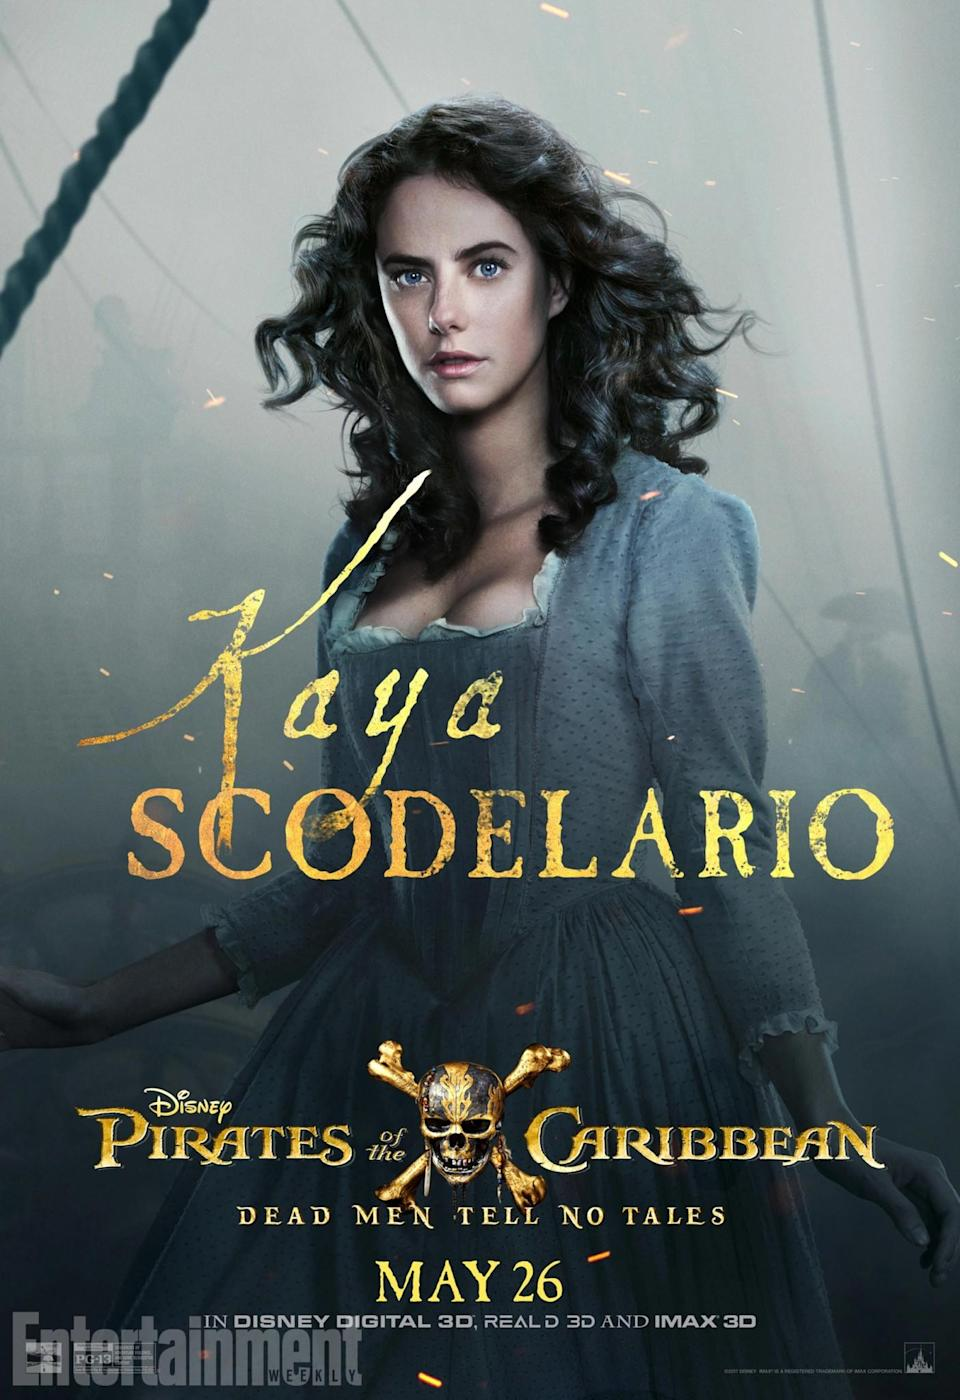 <p>A complete newcomer to the franchise, Kaya Scodelario plays Carina Smyth – a brilliant young scholar who's been researching the Trident of Poseidon… and wants to track down the powerful artefact herself. But will she get anywhere near with the help of Captain Jack? Or will he double cross her at the first opportunity?<br>(Credit: Disney) </p>